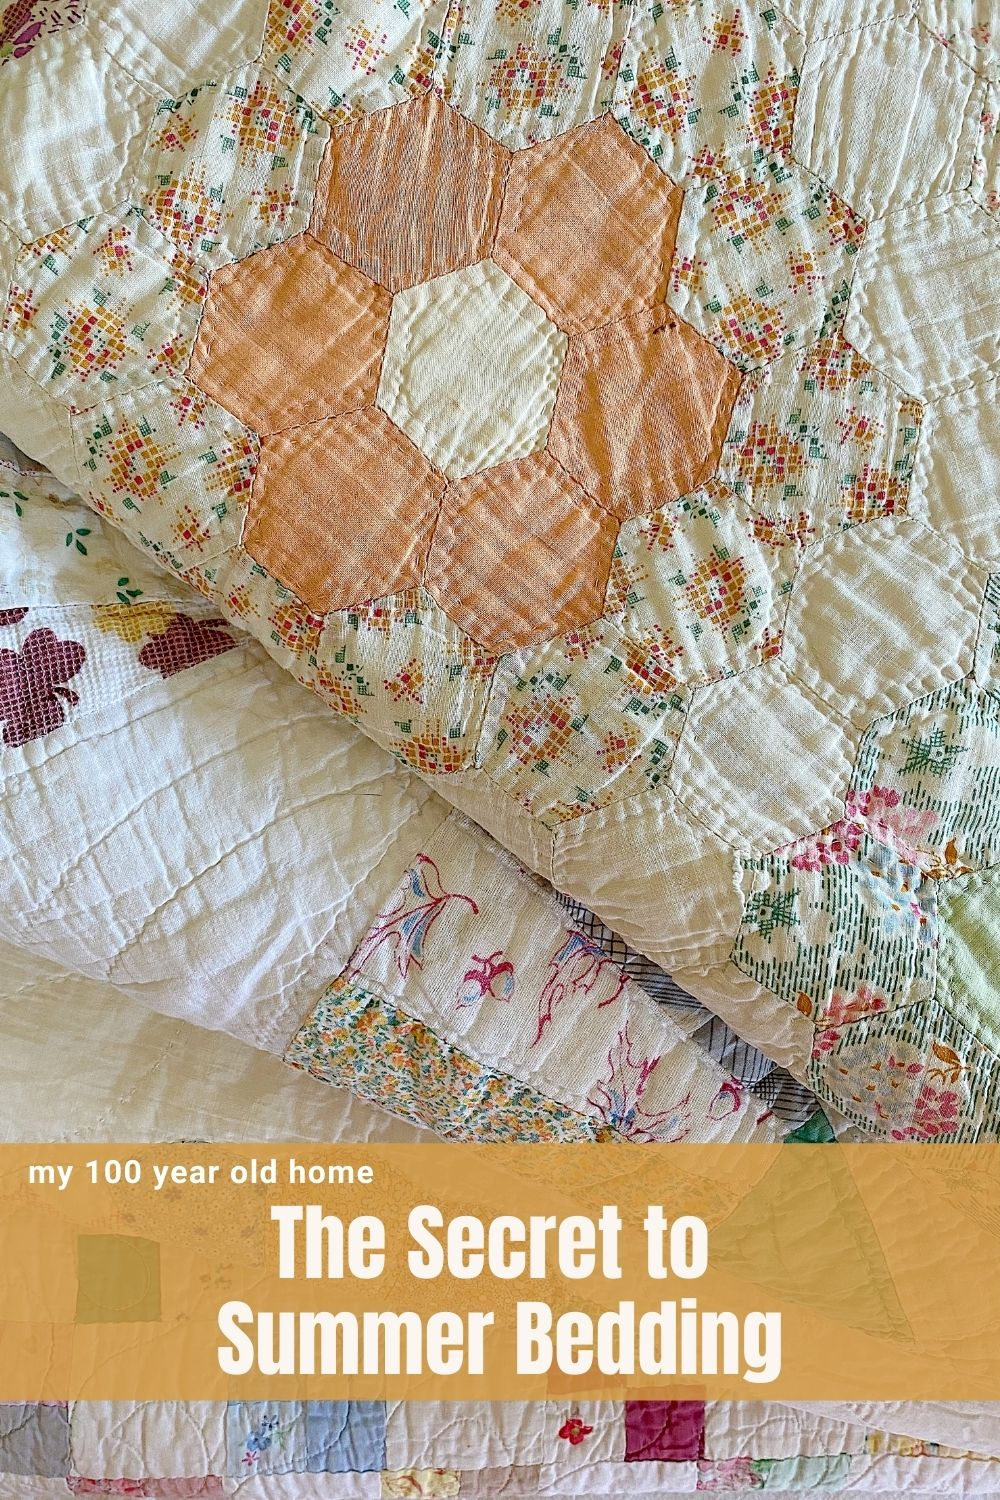 Summer nights are tough as we all struggle between heat and air conditioning. The secret is summer bedding and a homemade quilt.